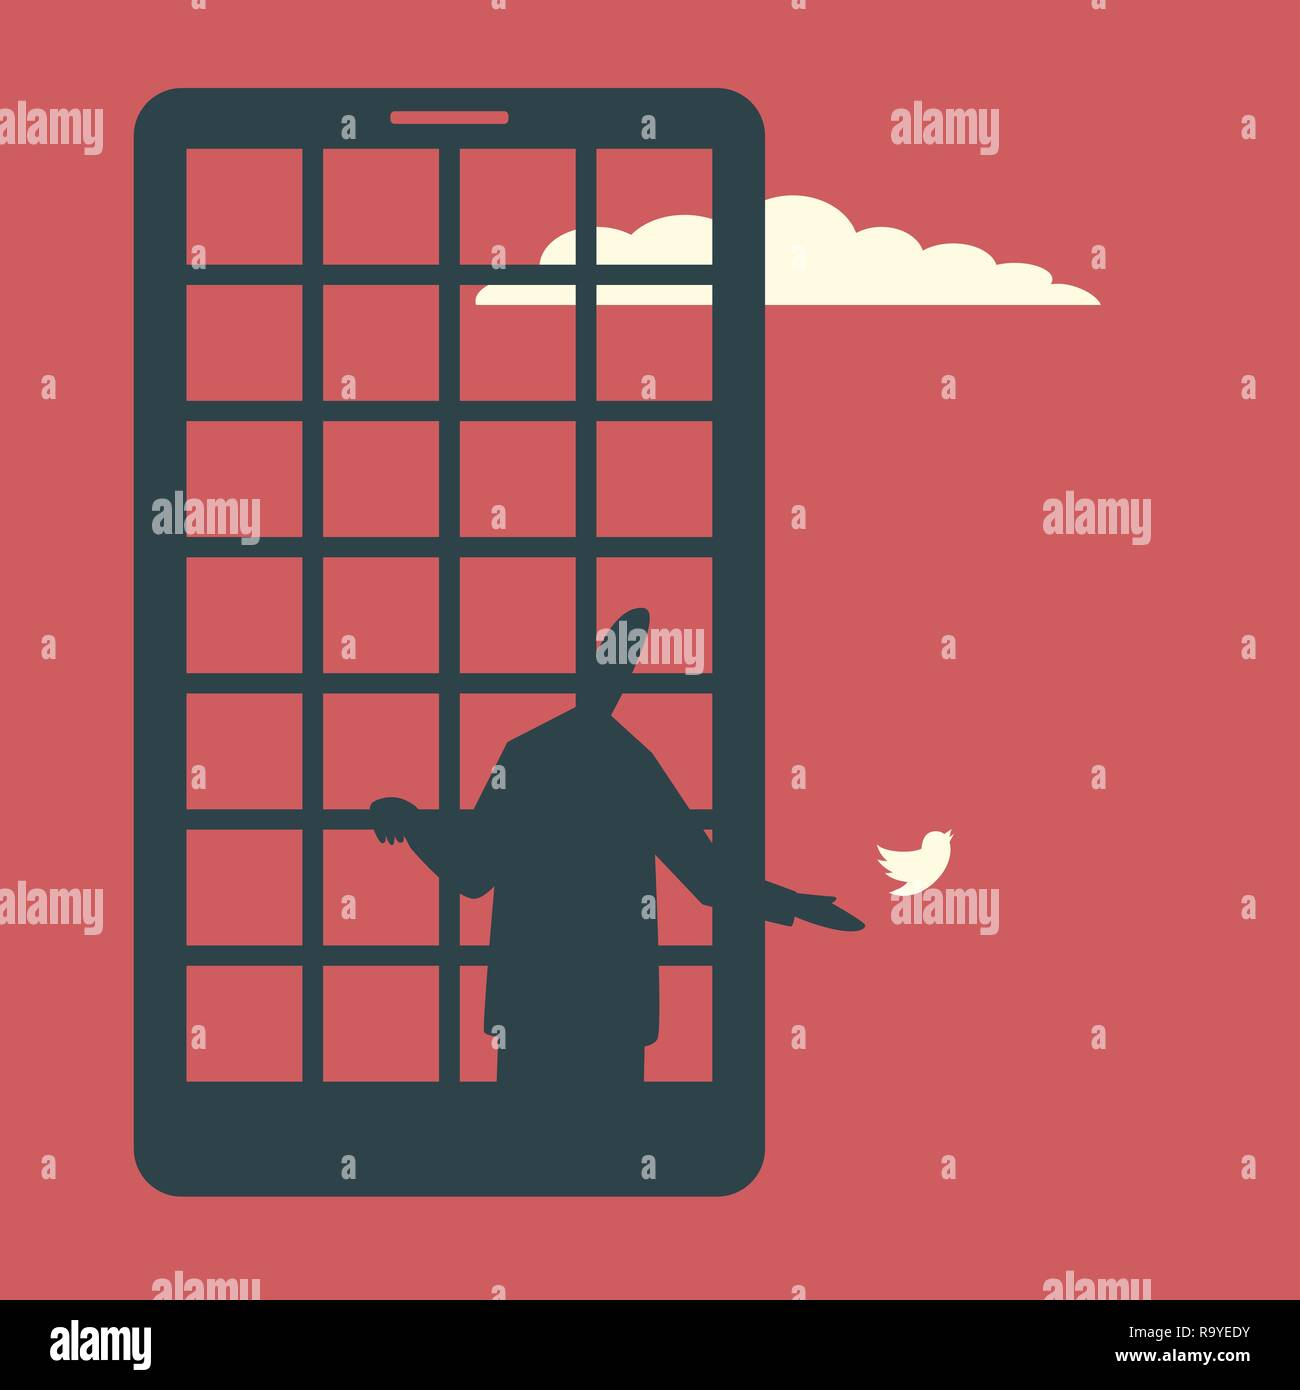 A man behind the jail bars as a smartphone screen lets the bird go. Smartphone addiction concept illustration. - Stock Image